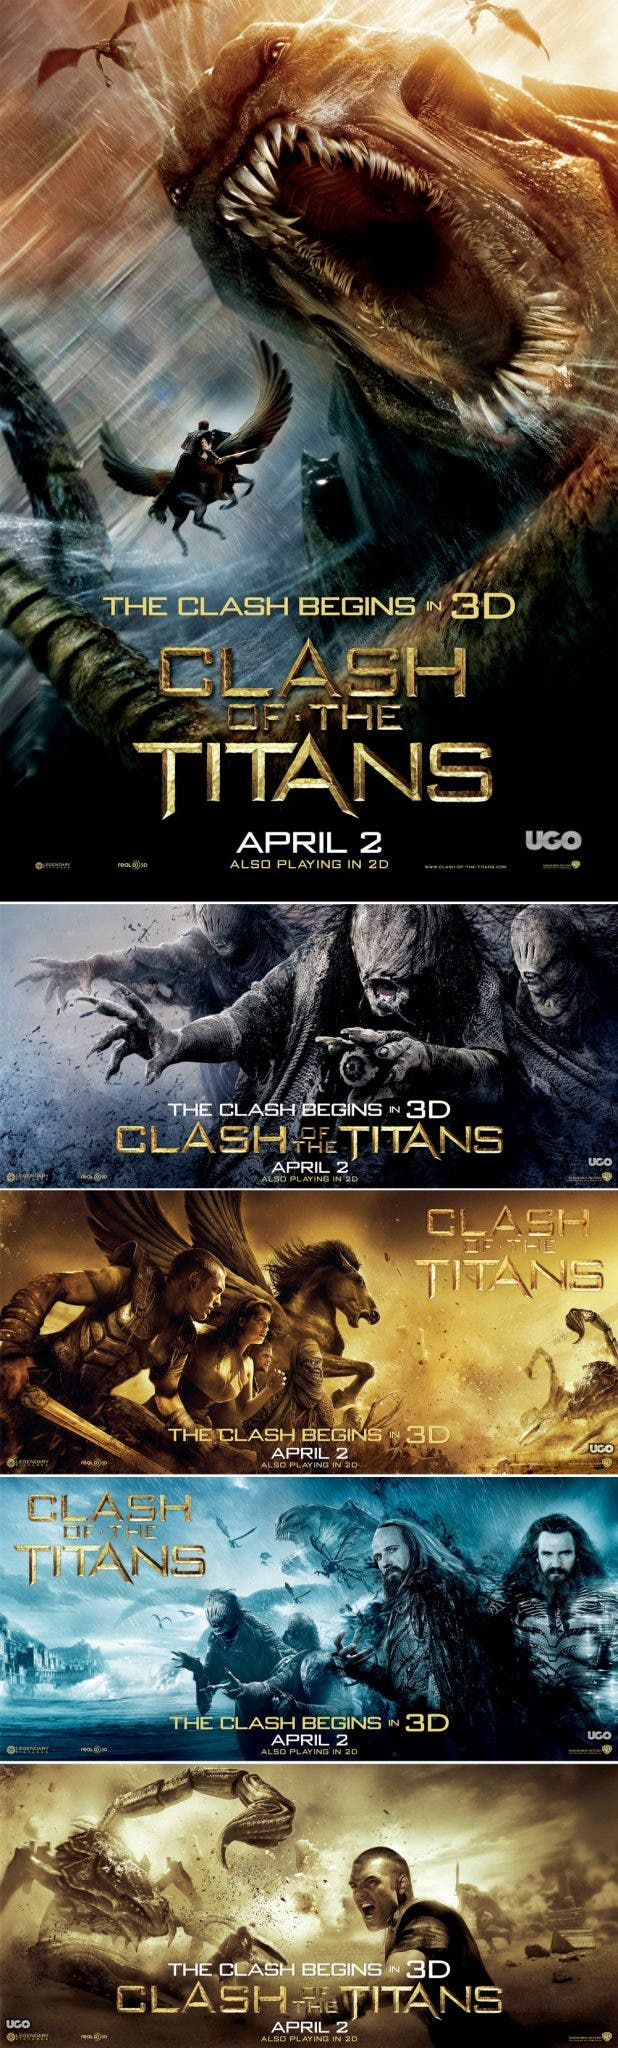 Poster Clash of titanes